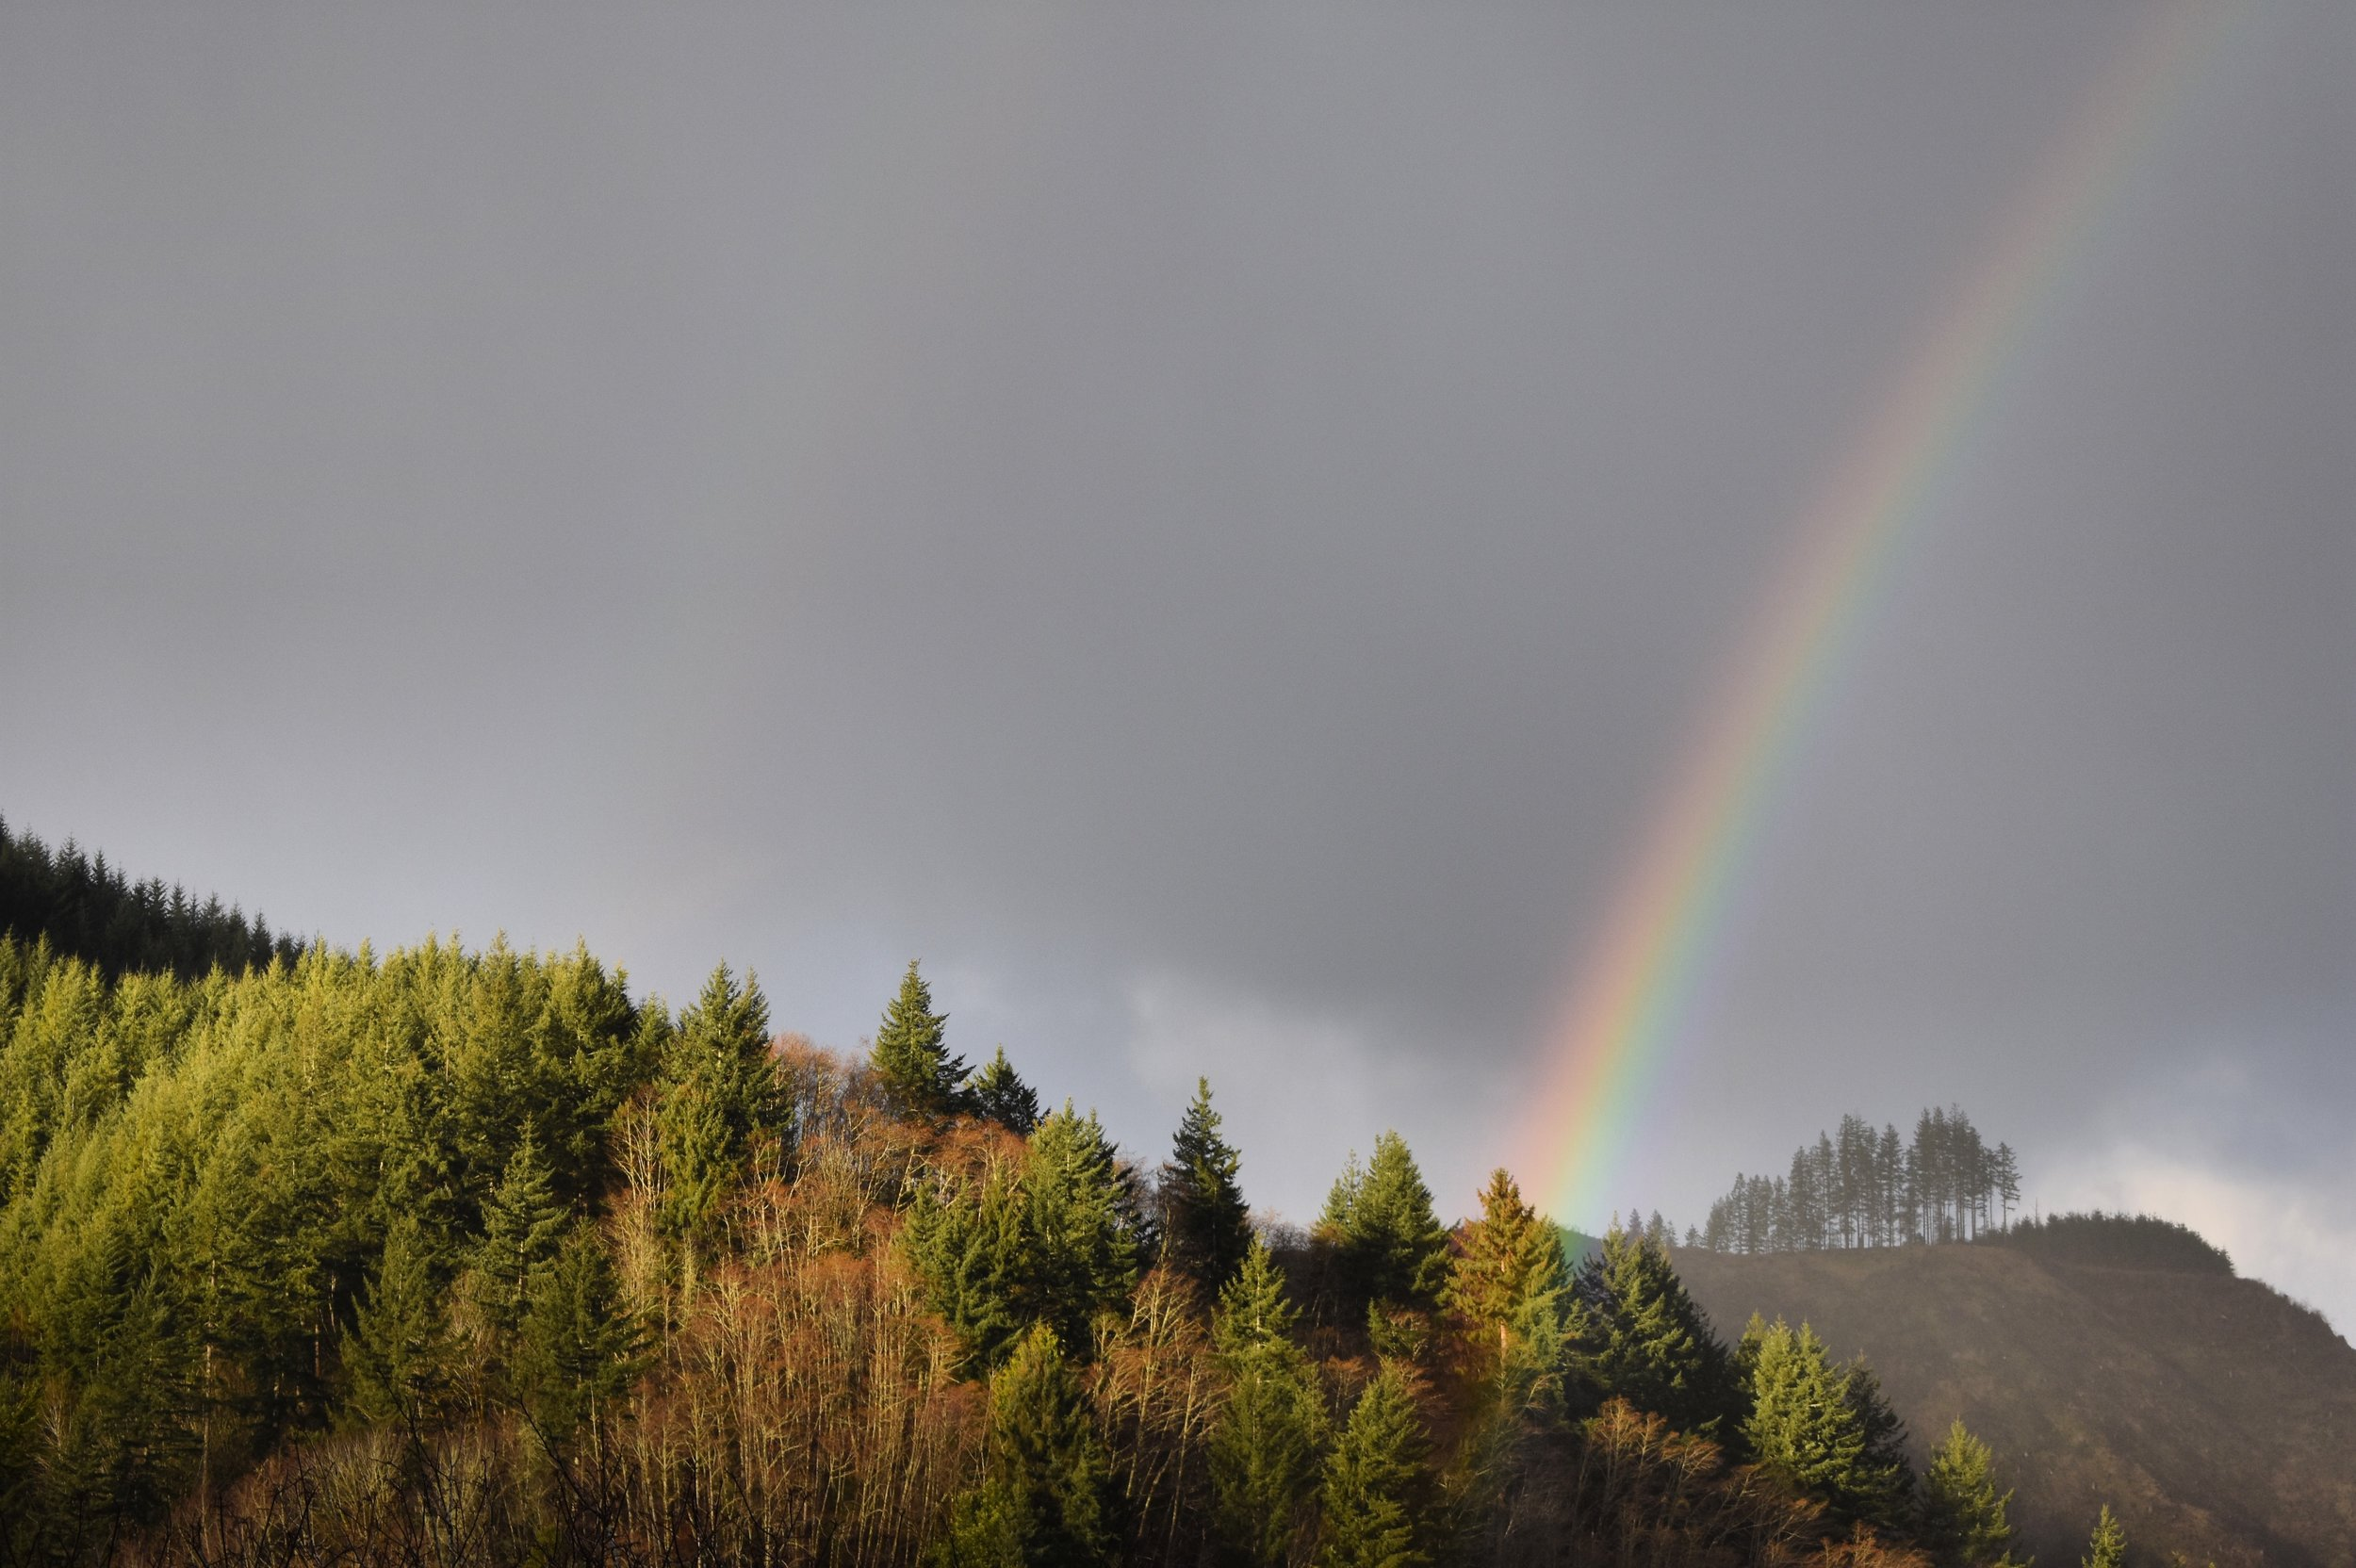 Rainbow over North Bend, OR